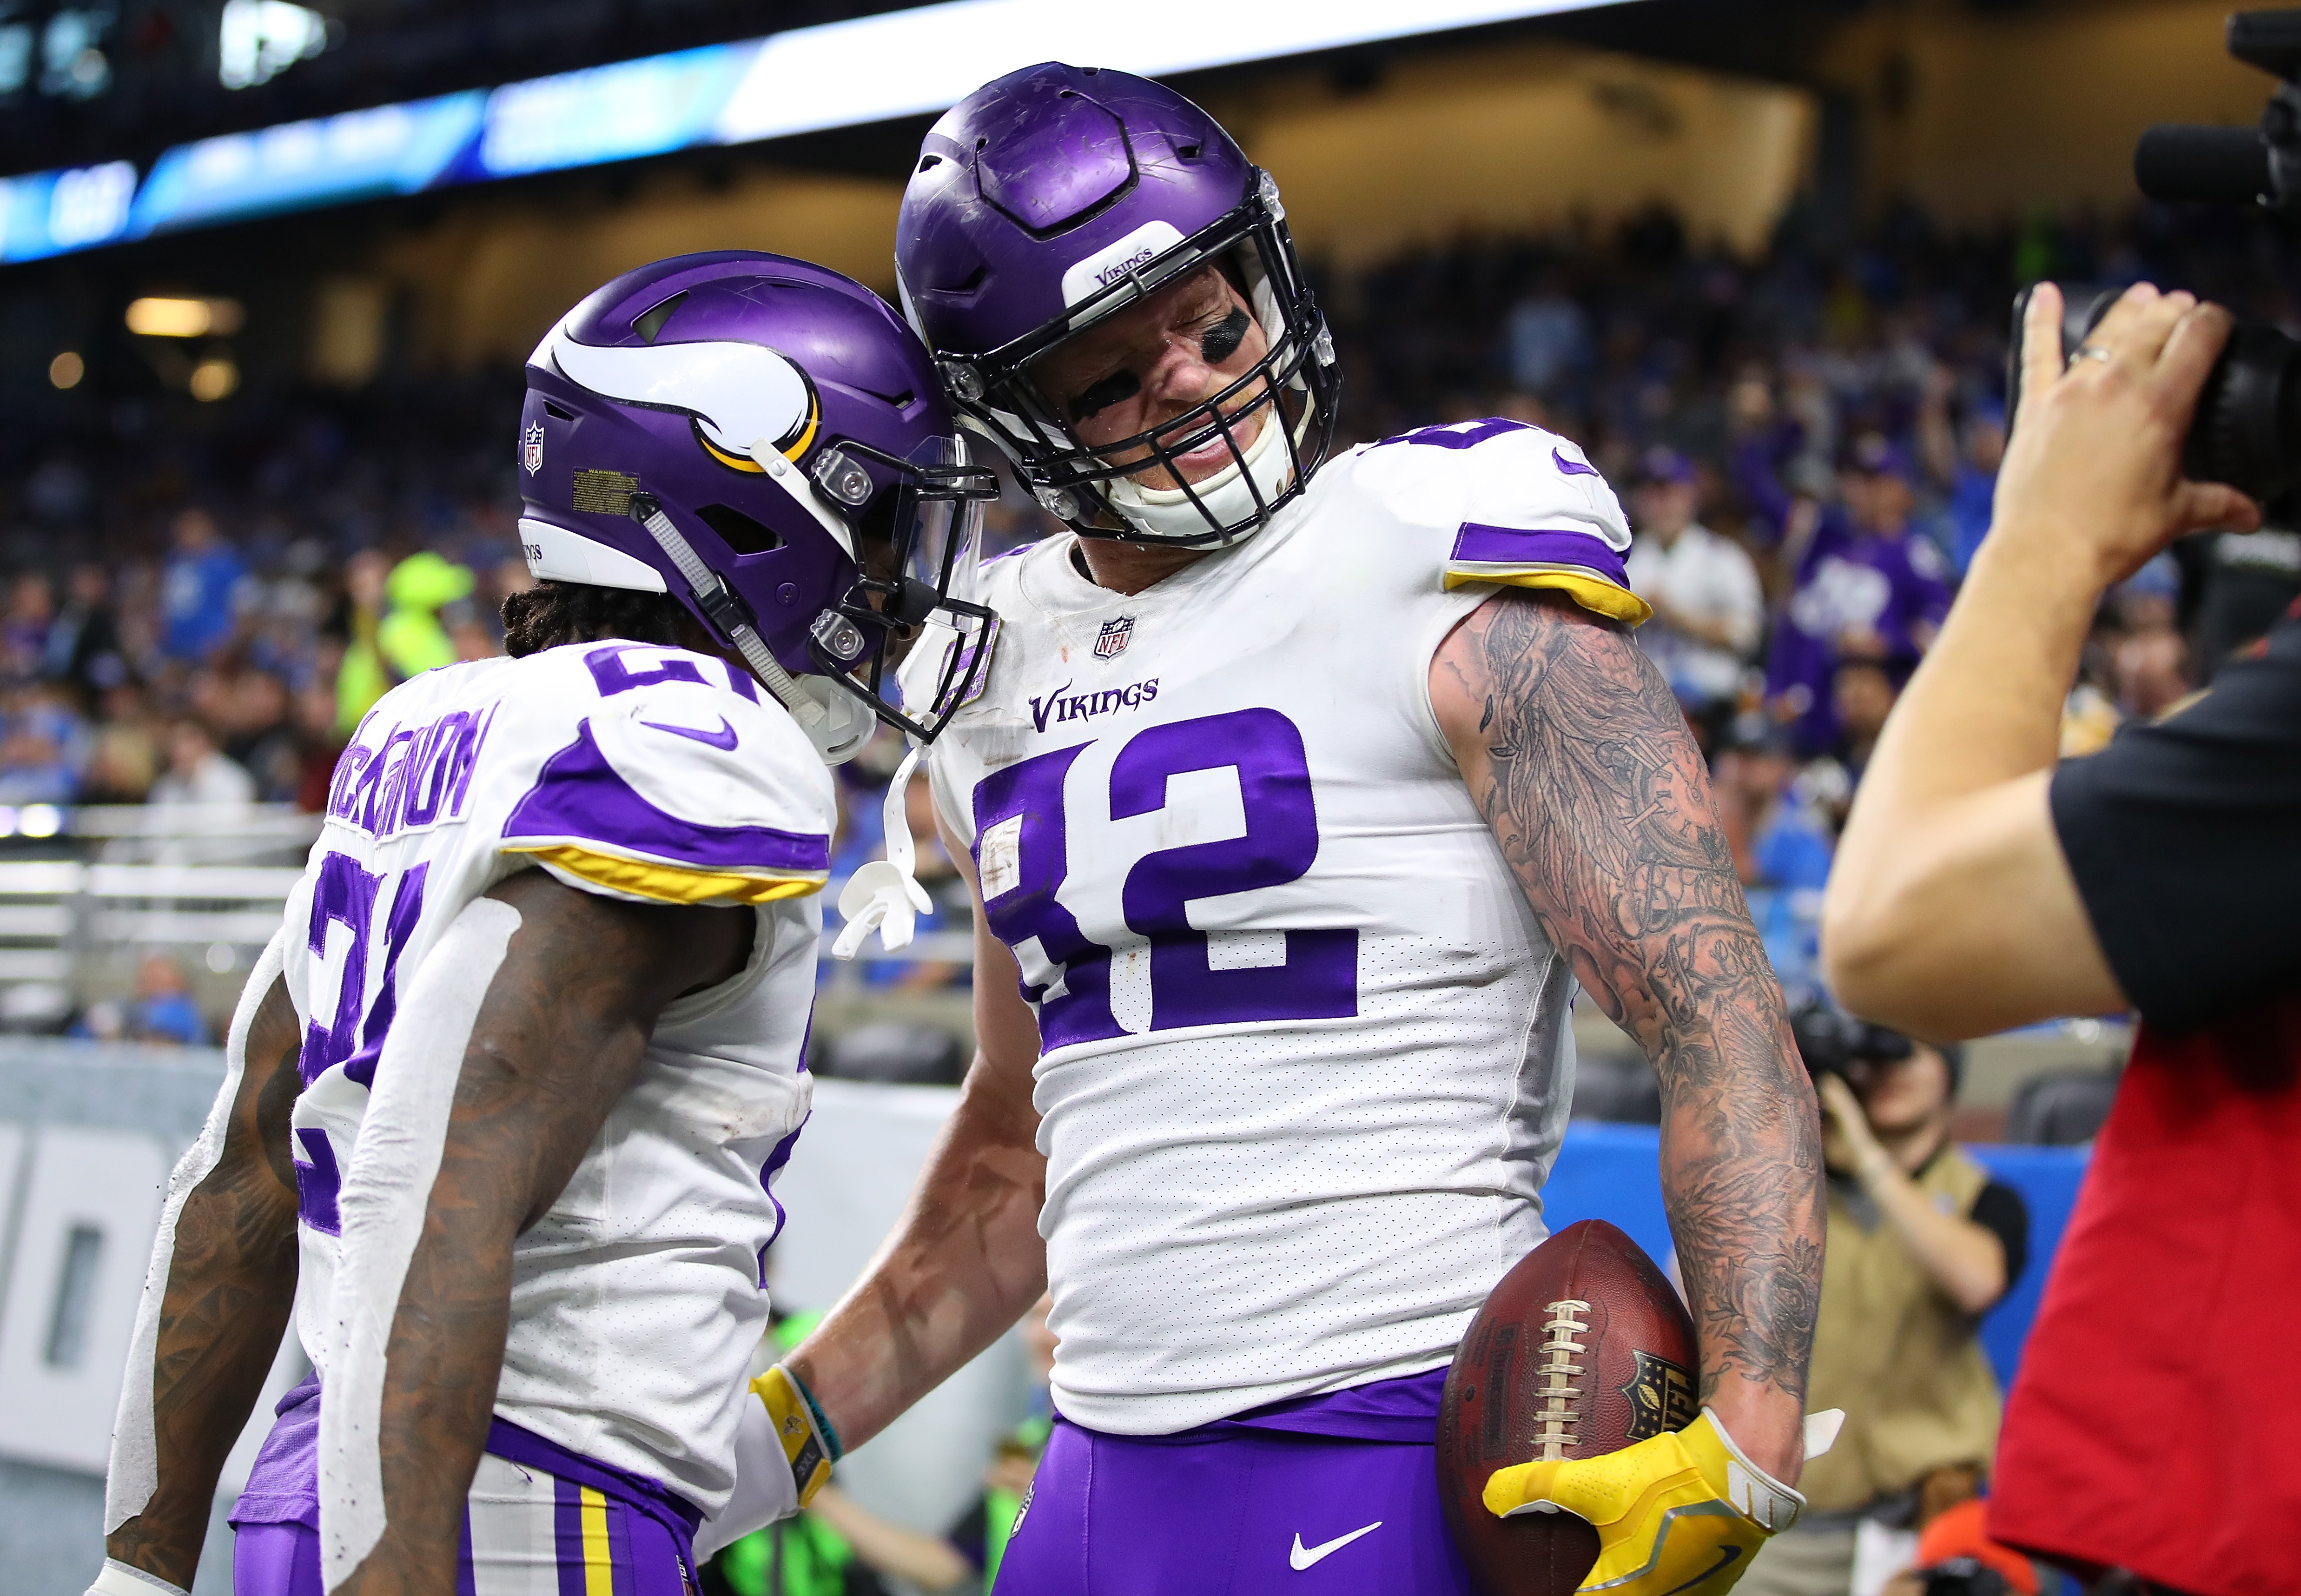 2017 NFL Picks, score predictions for Week 13 - Page 3